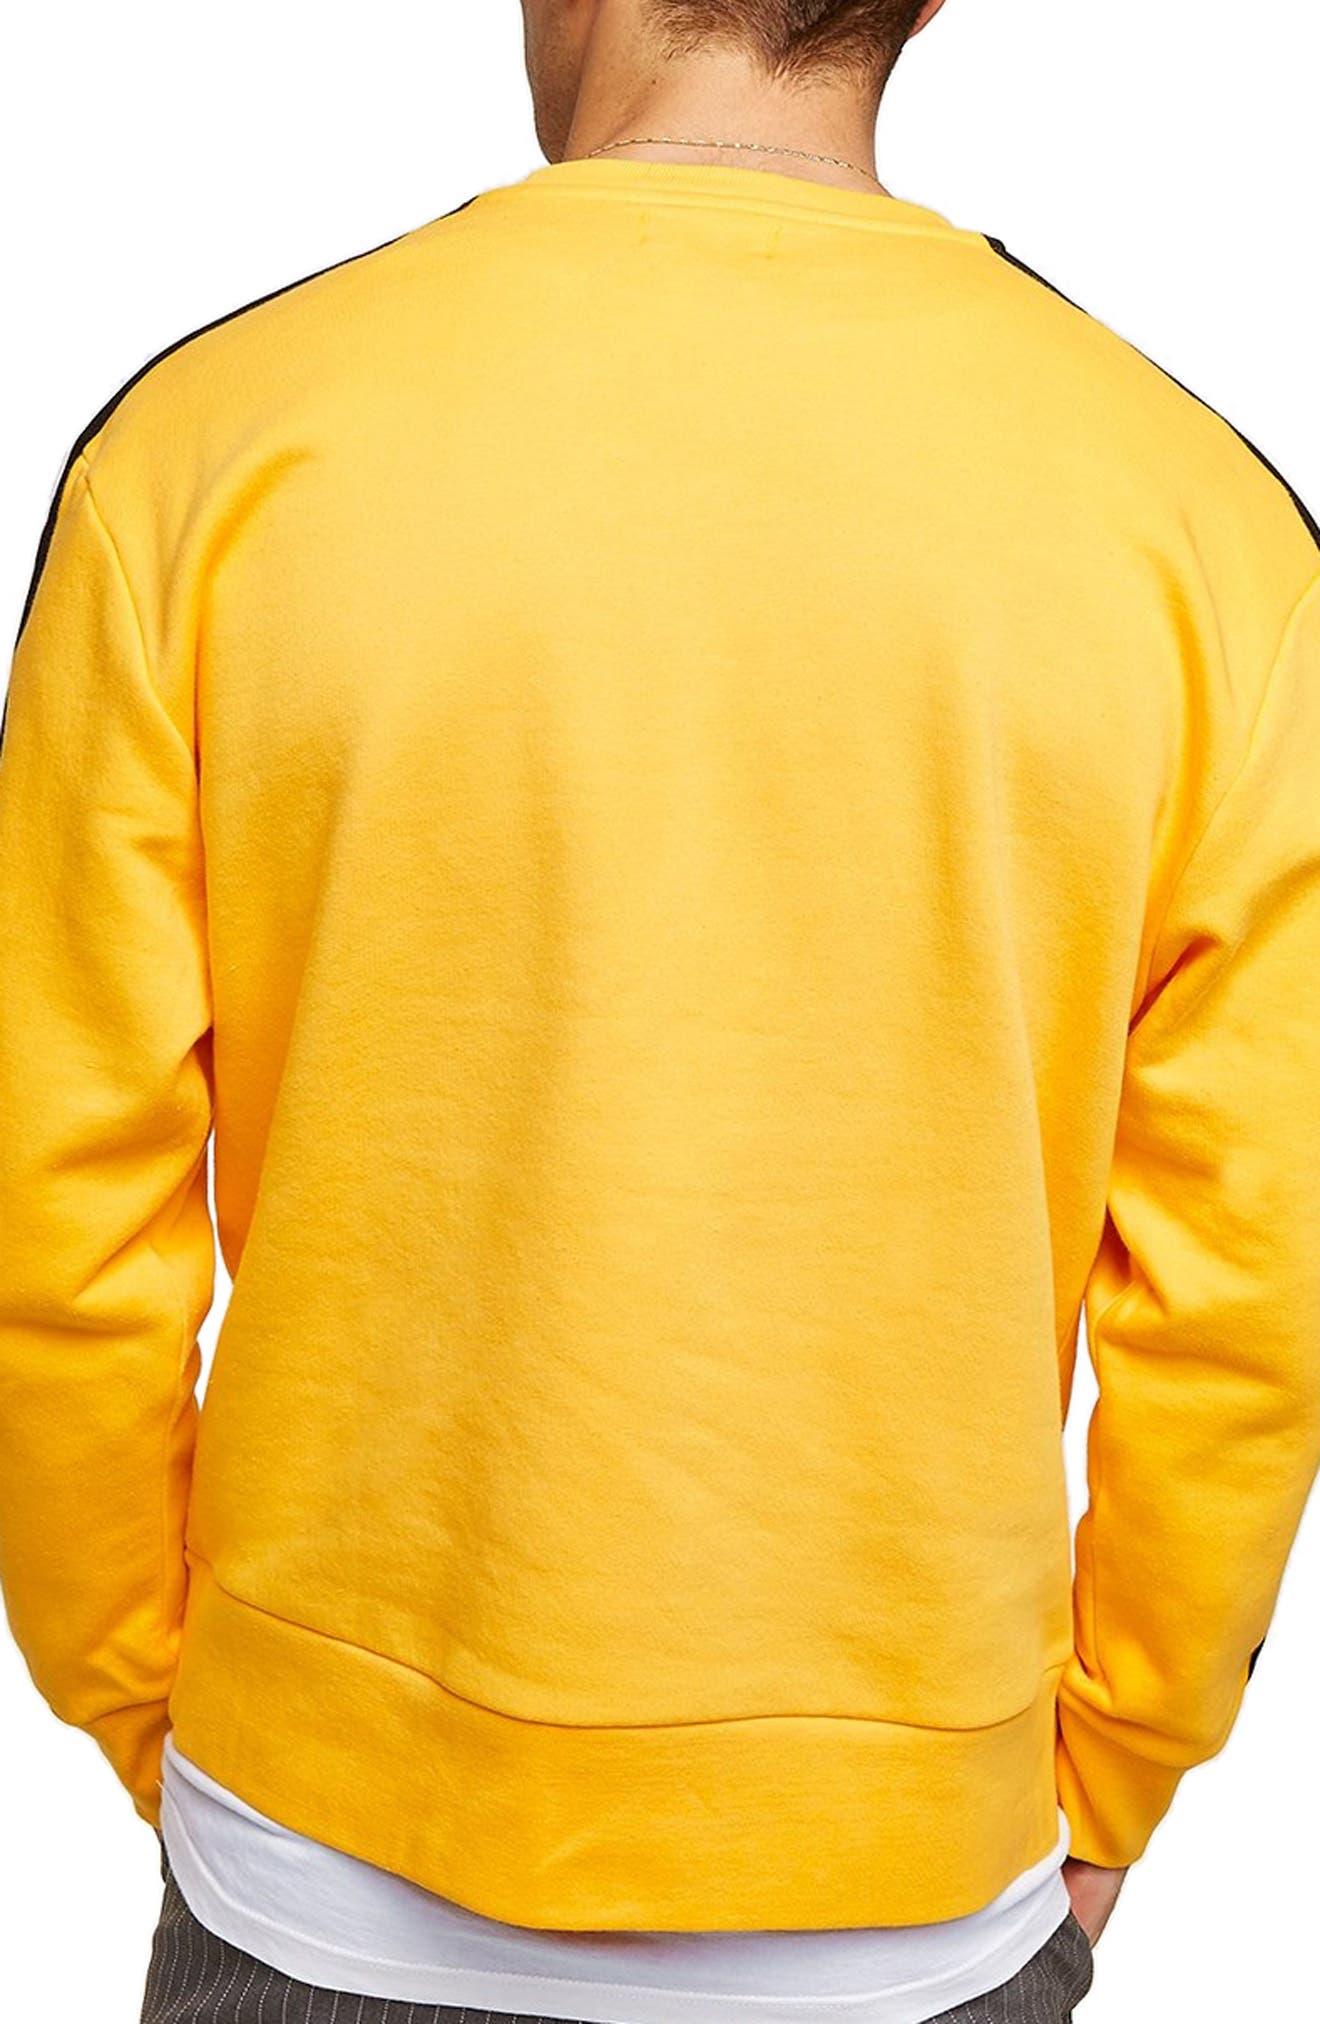 Taped Classic Fit Sweatshirt,                             Alternate thumbnail 2, color,                             700